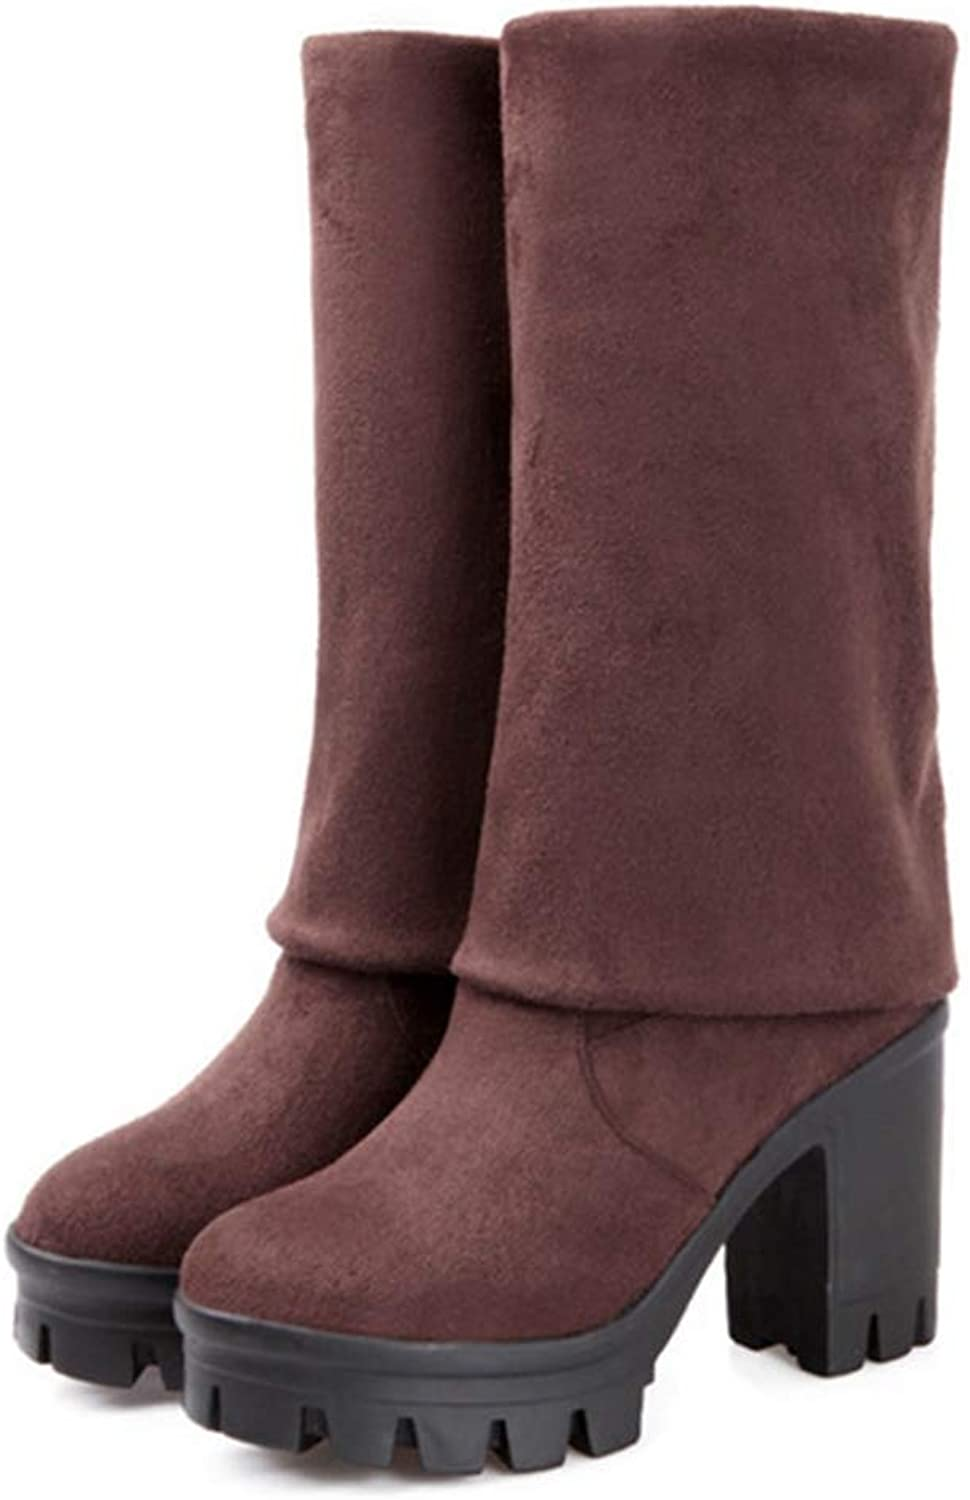 Hoxekle Square High Heel Women Stretch Fabric Over The Knee Boots shoes Winter Lace Up Suede Thigh High Boots